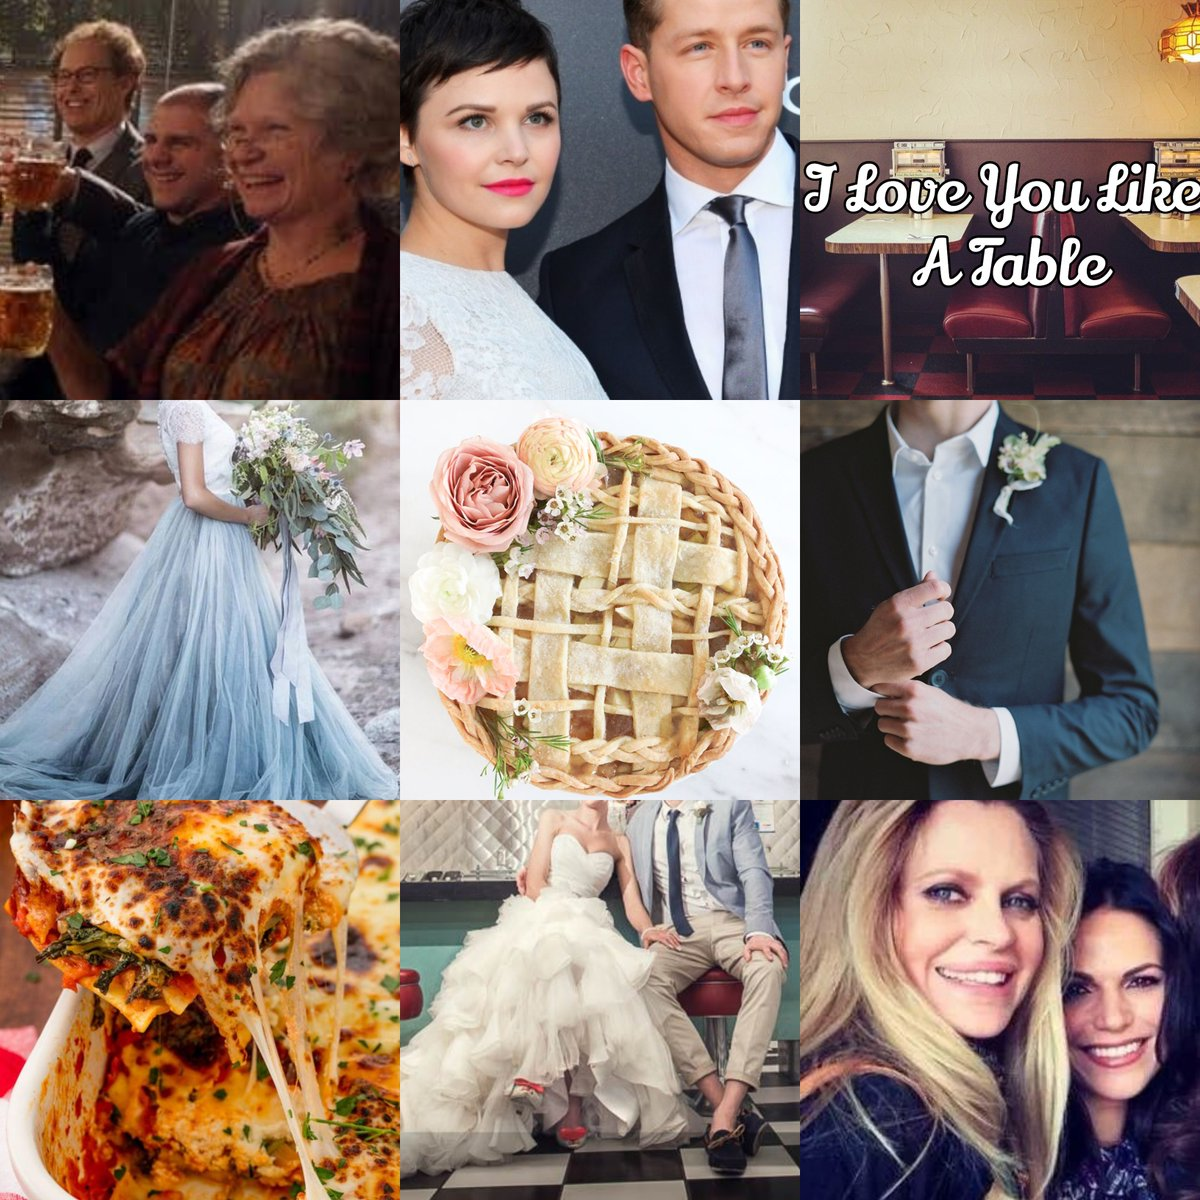 #Snowing's Wedding in Soft Place To Land (for @soIkoroIeva_)  No spoilers for OQ...but soon we'll see the union of the cutie pie Mary Margaret and the heir to the Nolan Dairy fortune, David. Regina caters, with a special pie: peaches, lemon juice and a dash of cinnamon.